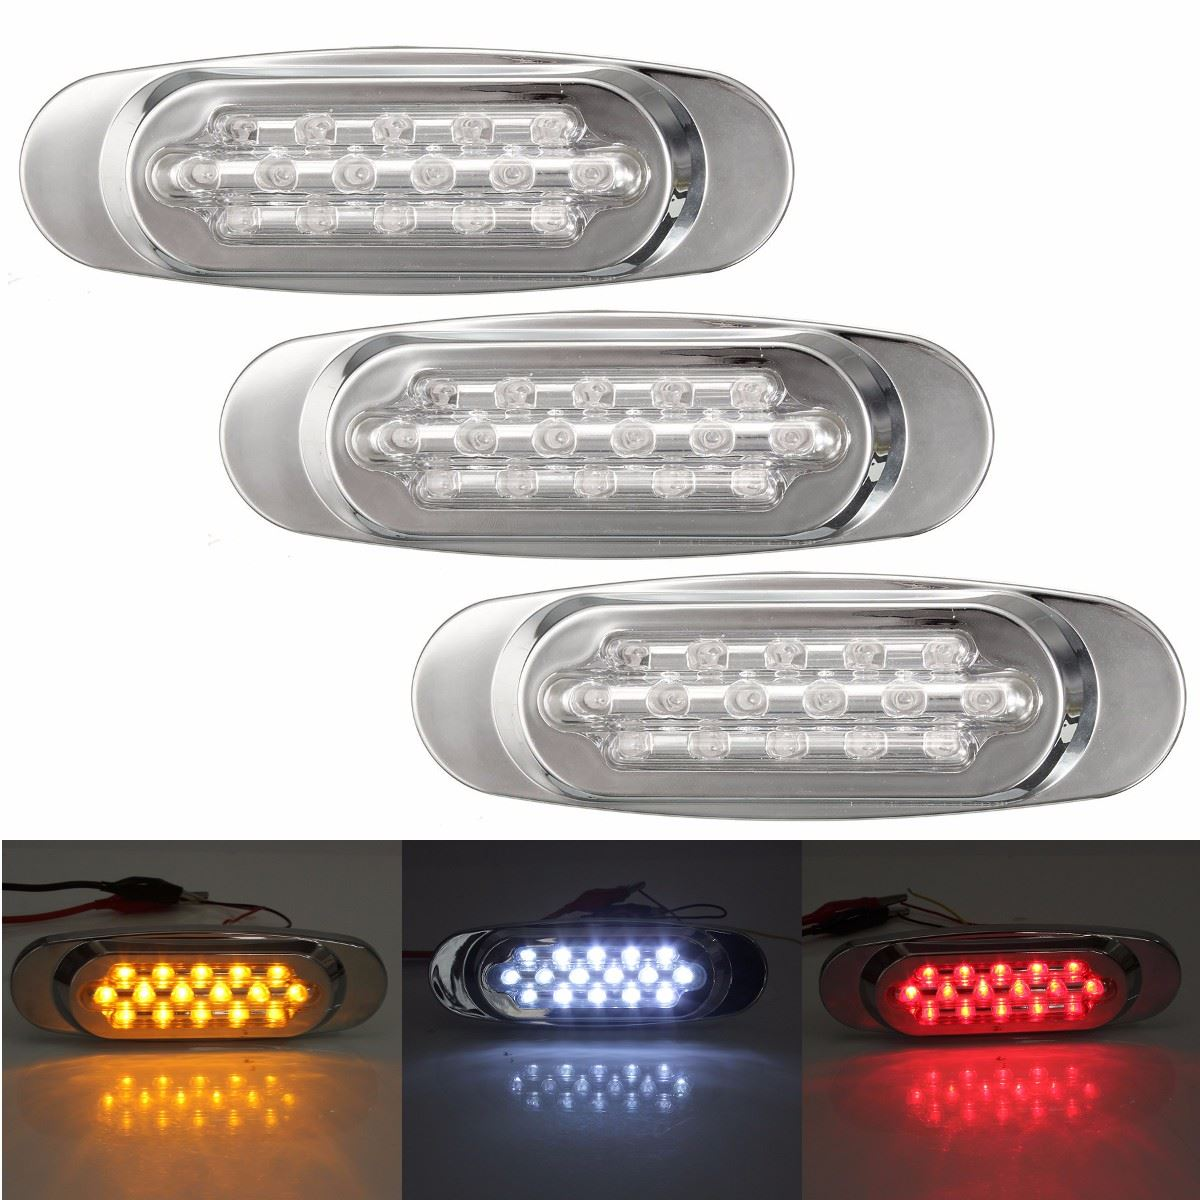 12V Waterproof 16 LED Beads Car Trailer Truck Edge Side Marker Clearance Lights Straight Bulb Warning Lamp Caravan Parking Light cheappest small household meat mincing machine wholesale